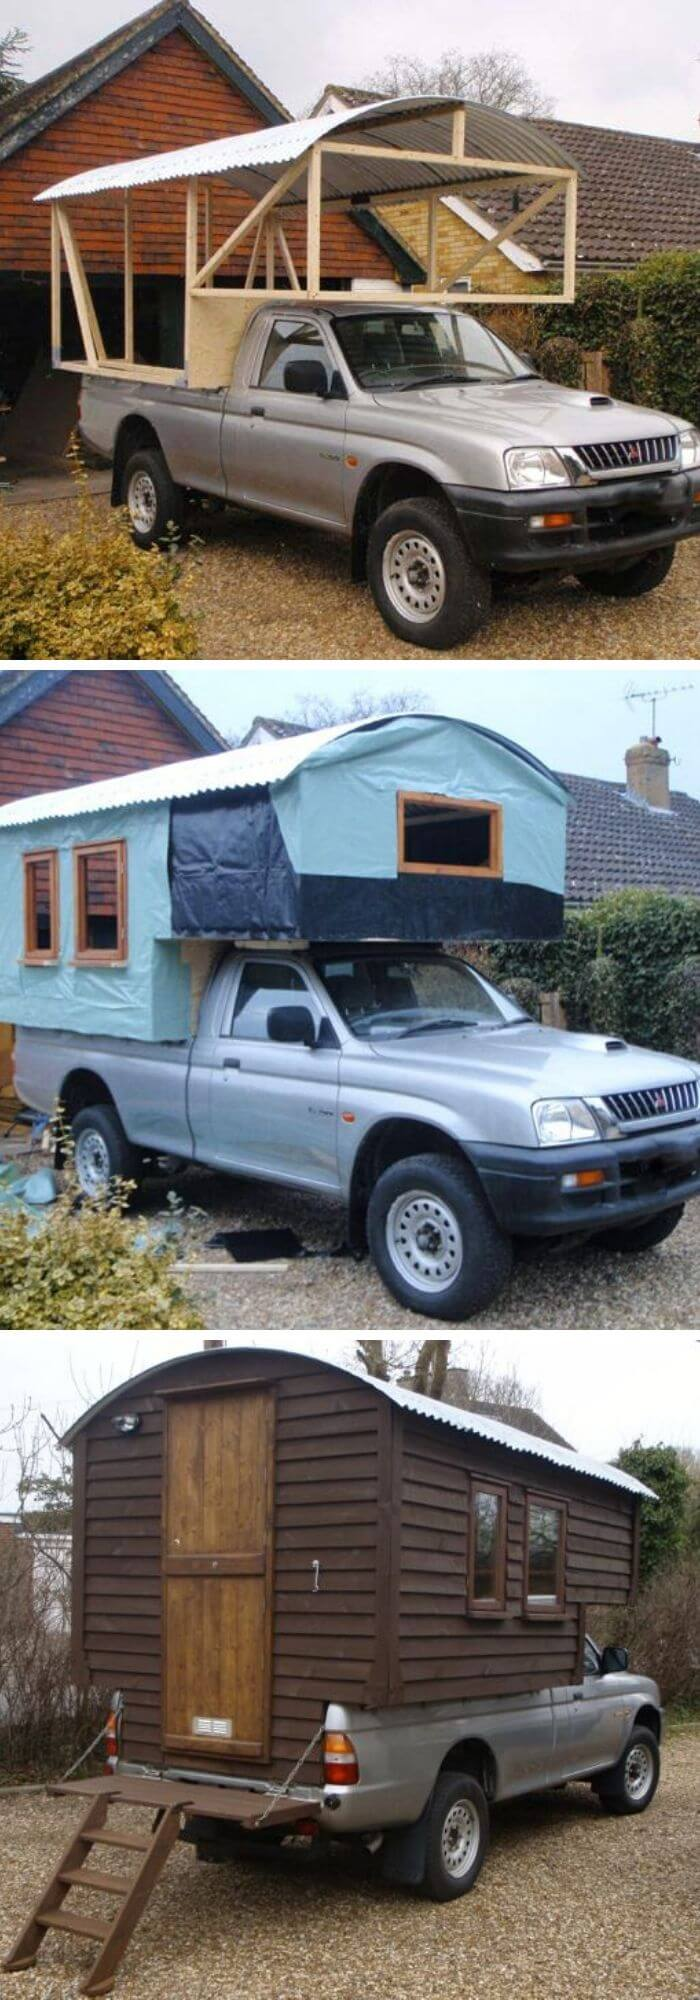 Backyard DIY Truck House